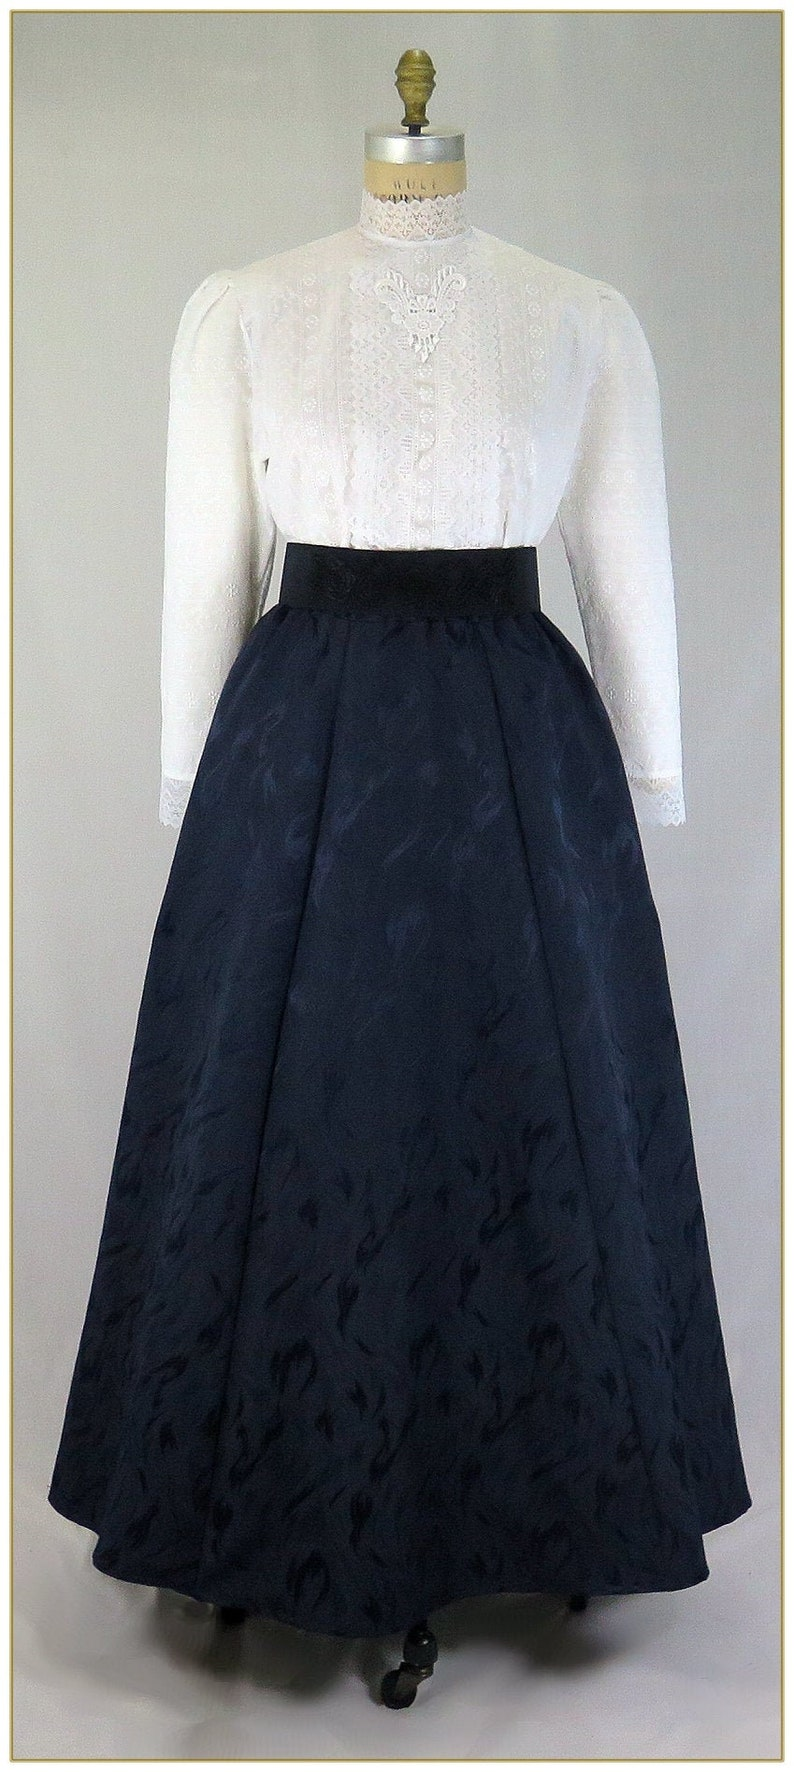 Steampunk Skirts | Bustle Skirts, Lace Skirts, Ruffle Skirts Victorian Midnight Navy Blue Jacquard Skirt $68.00 AT vintagedancer.com